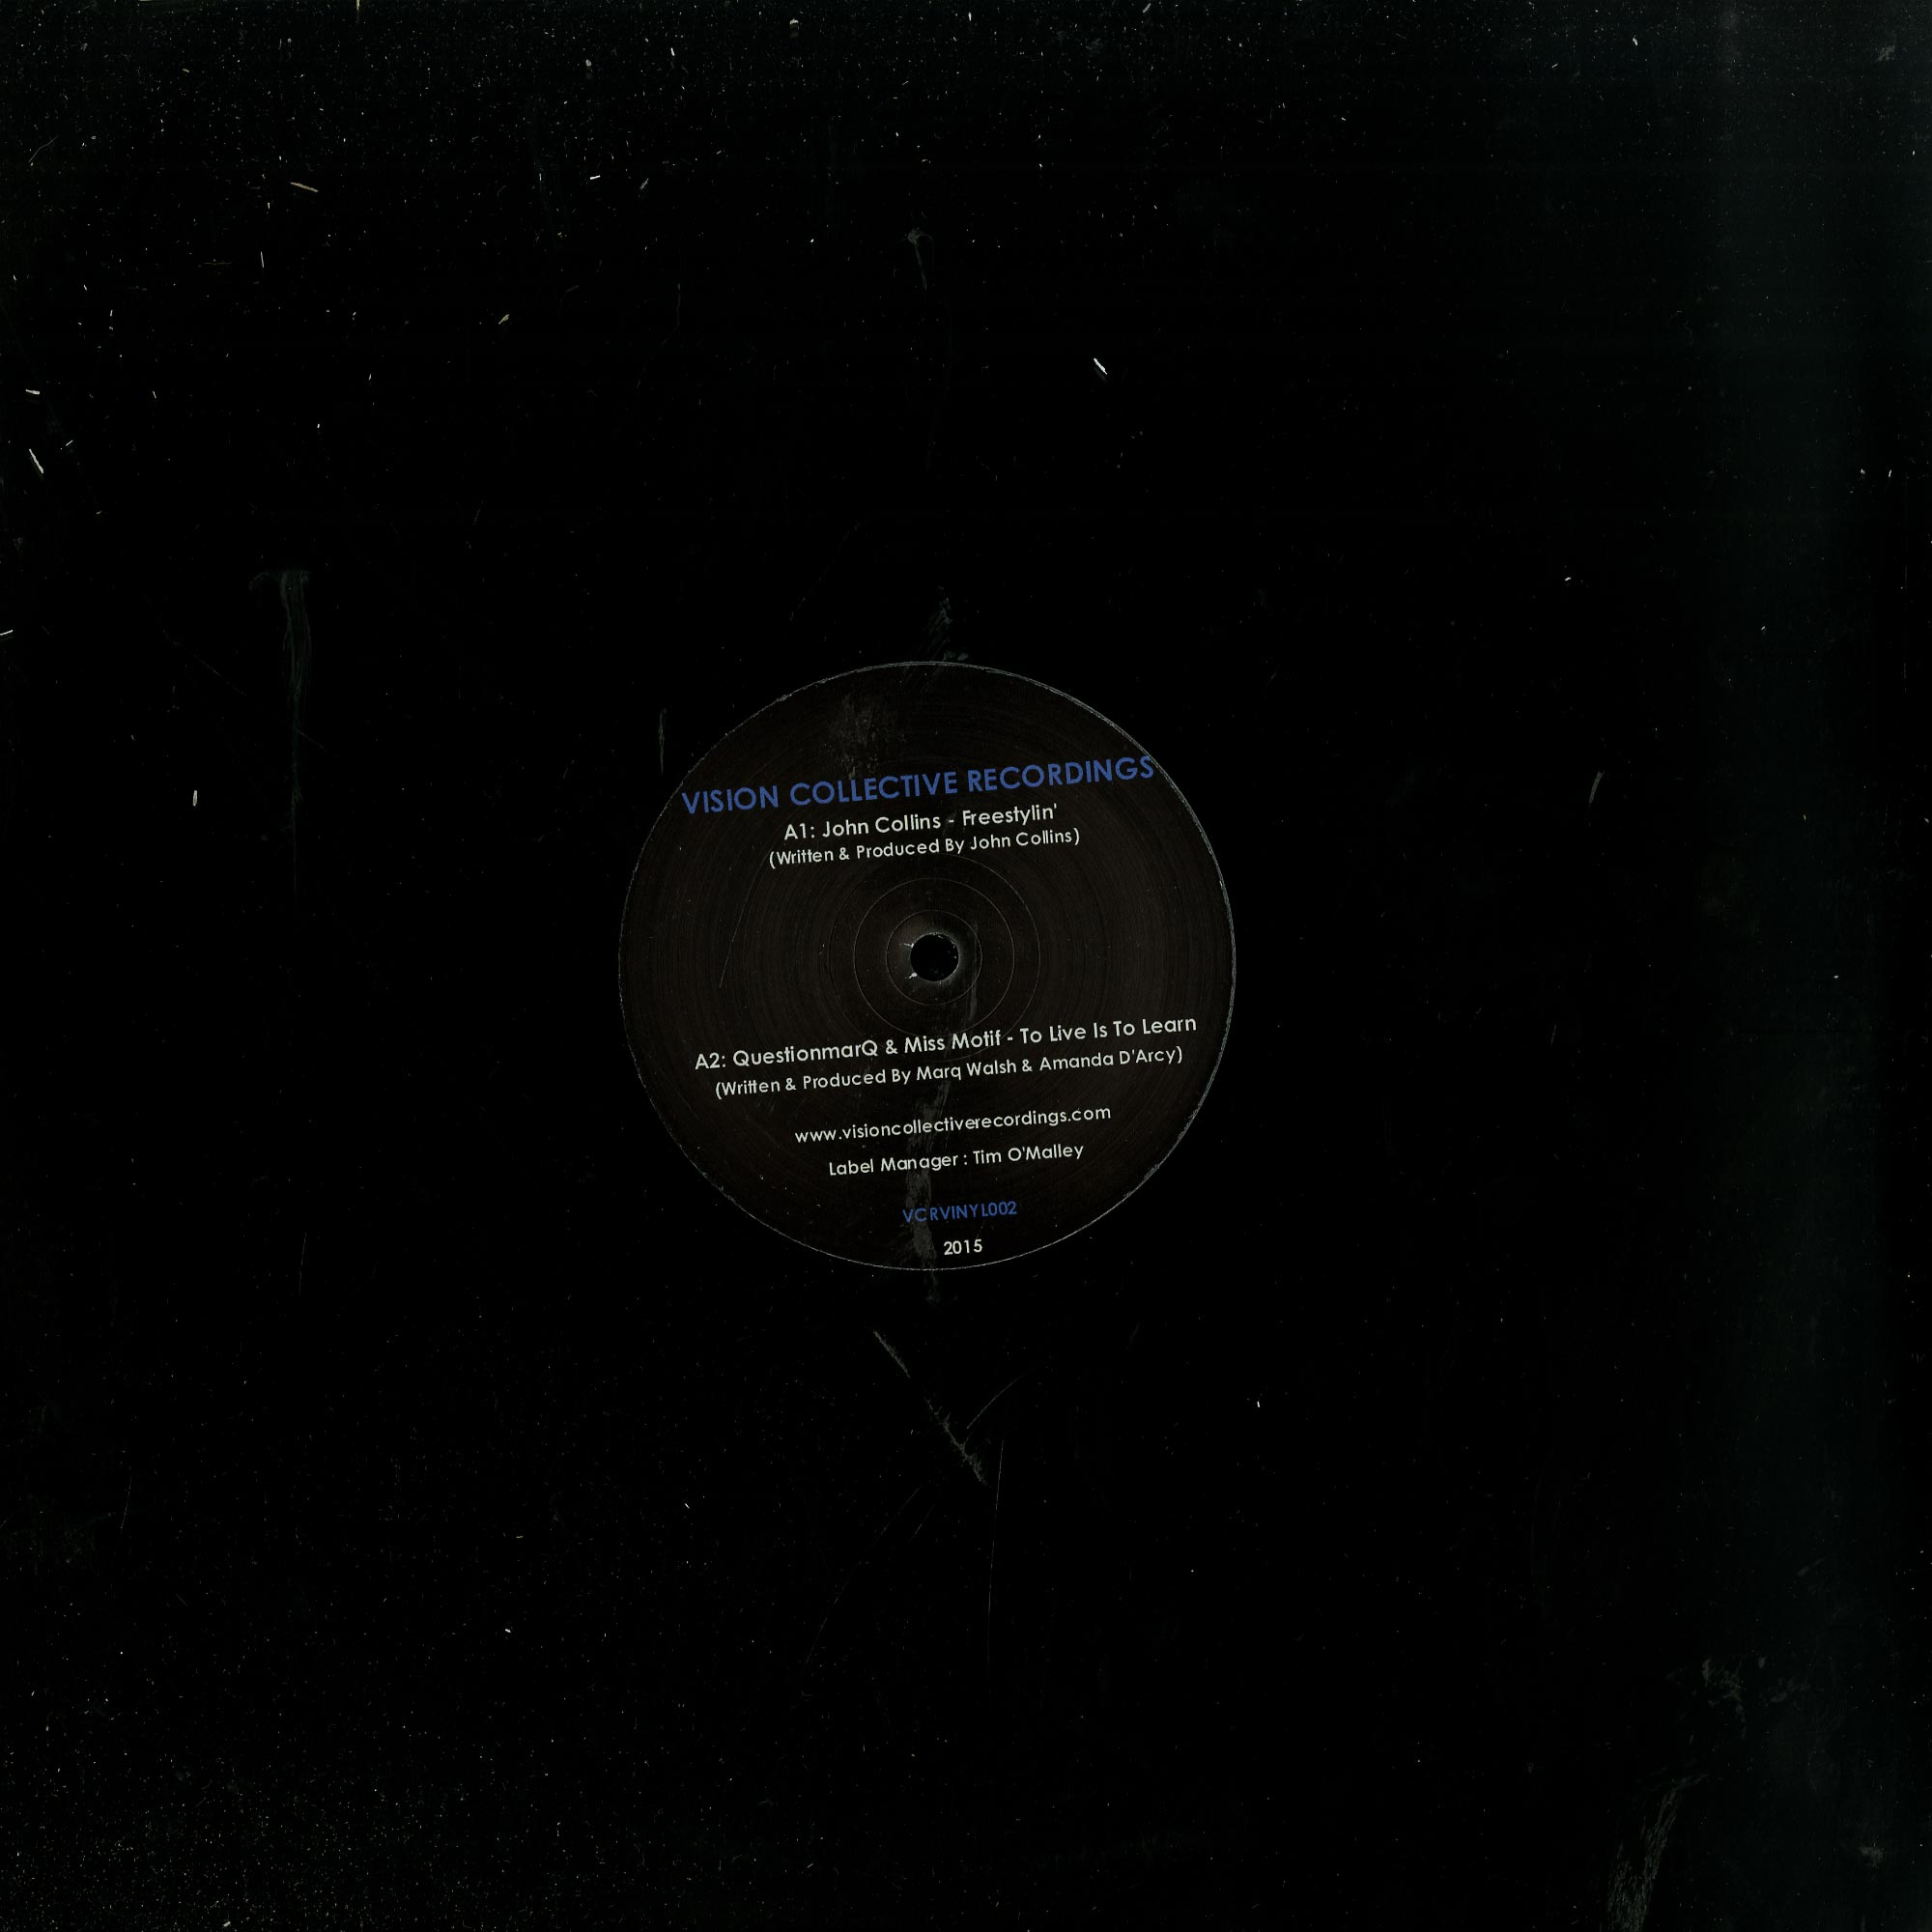 John Collins, Questionmarq, Mick Verma - THE PERCEPTION EP